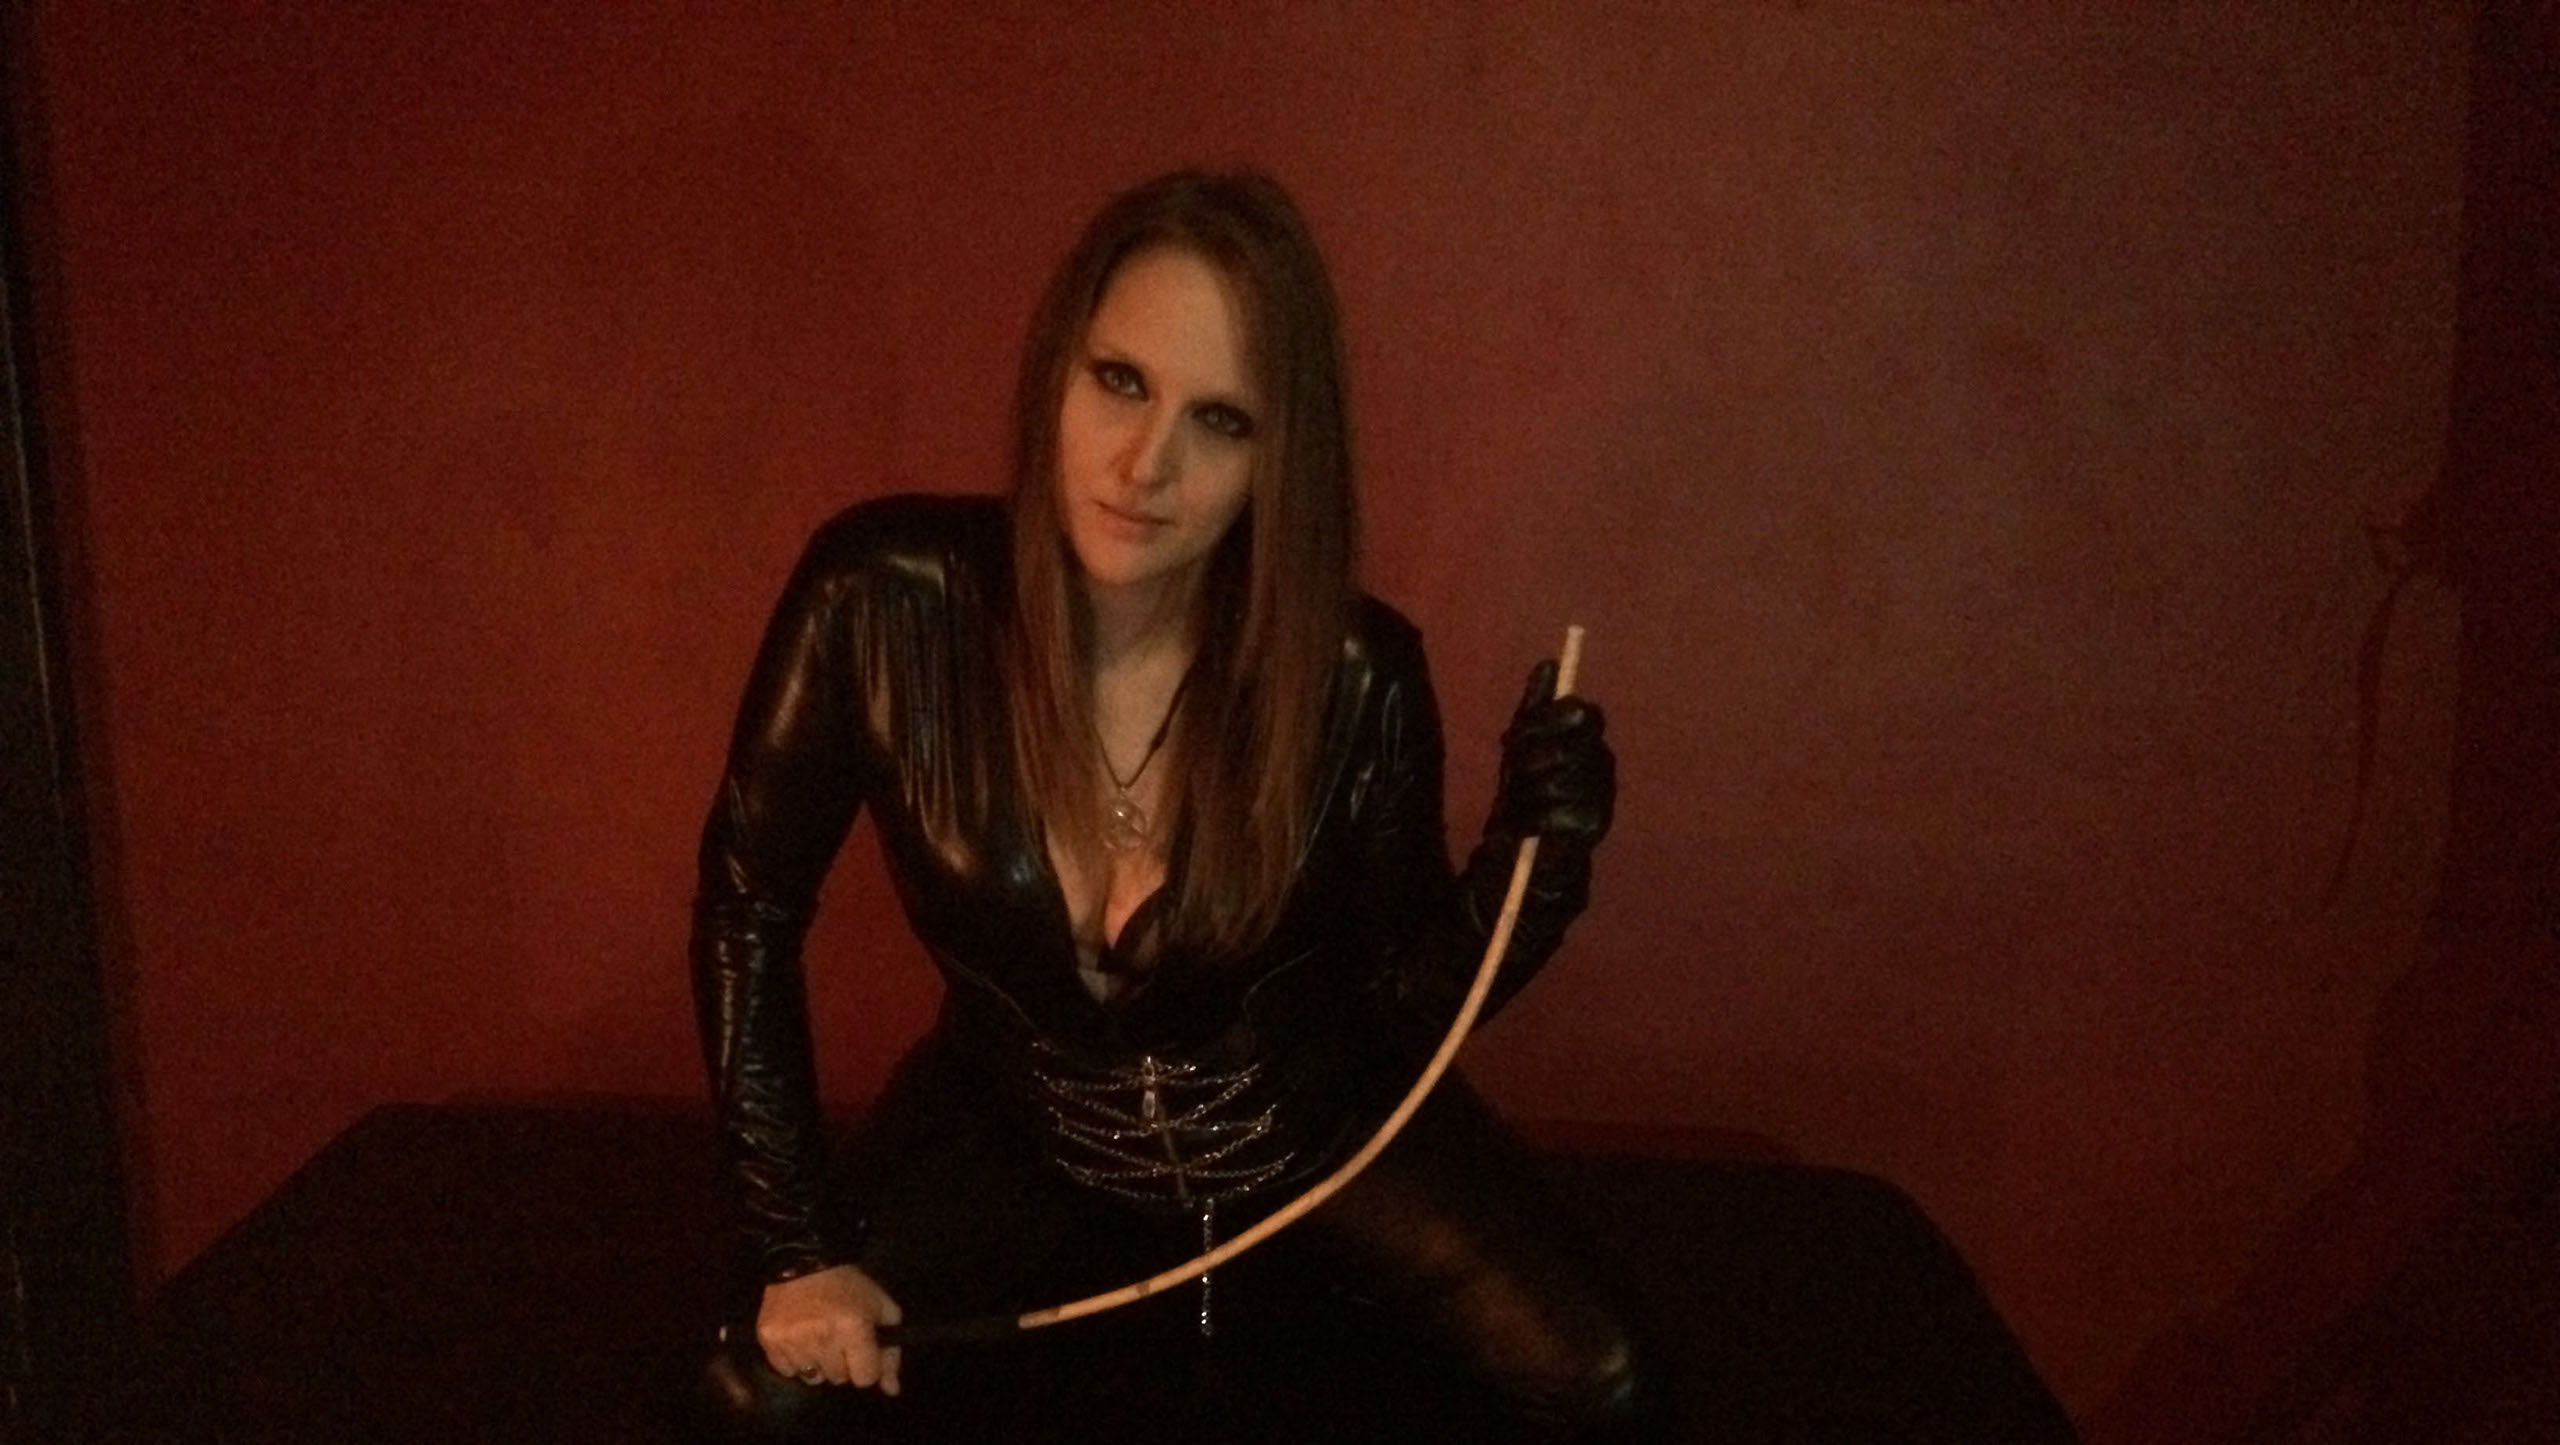 devon dominatrix